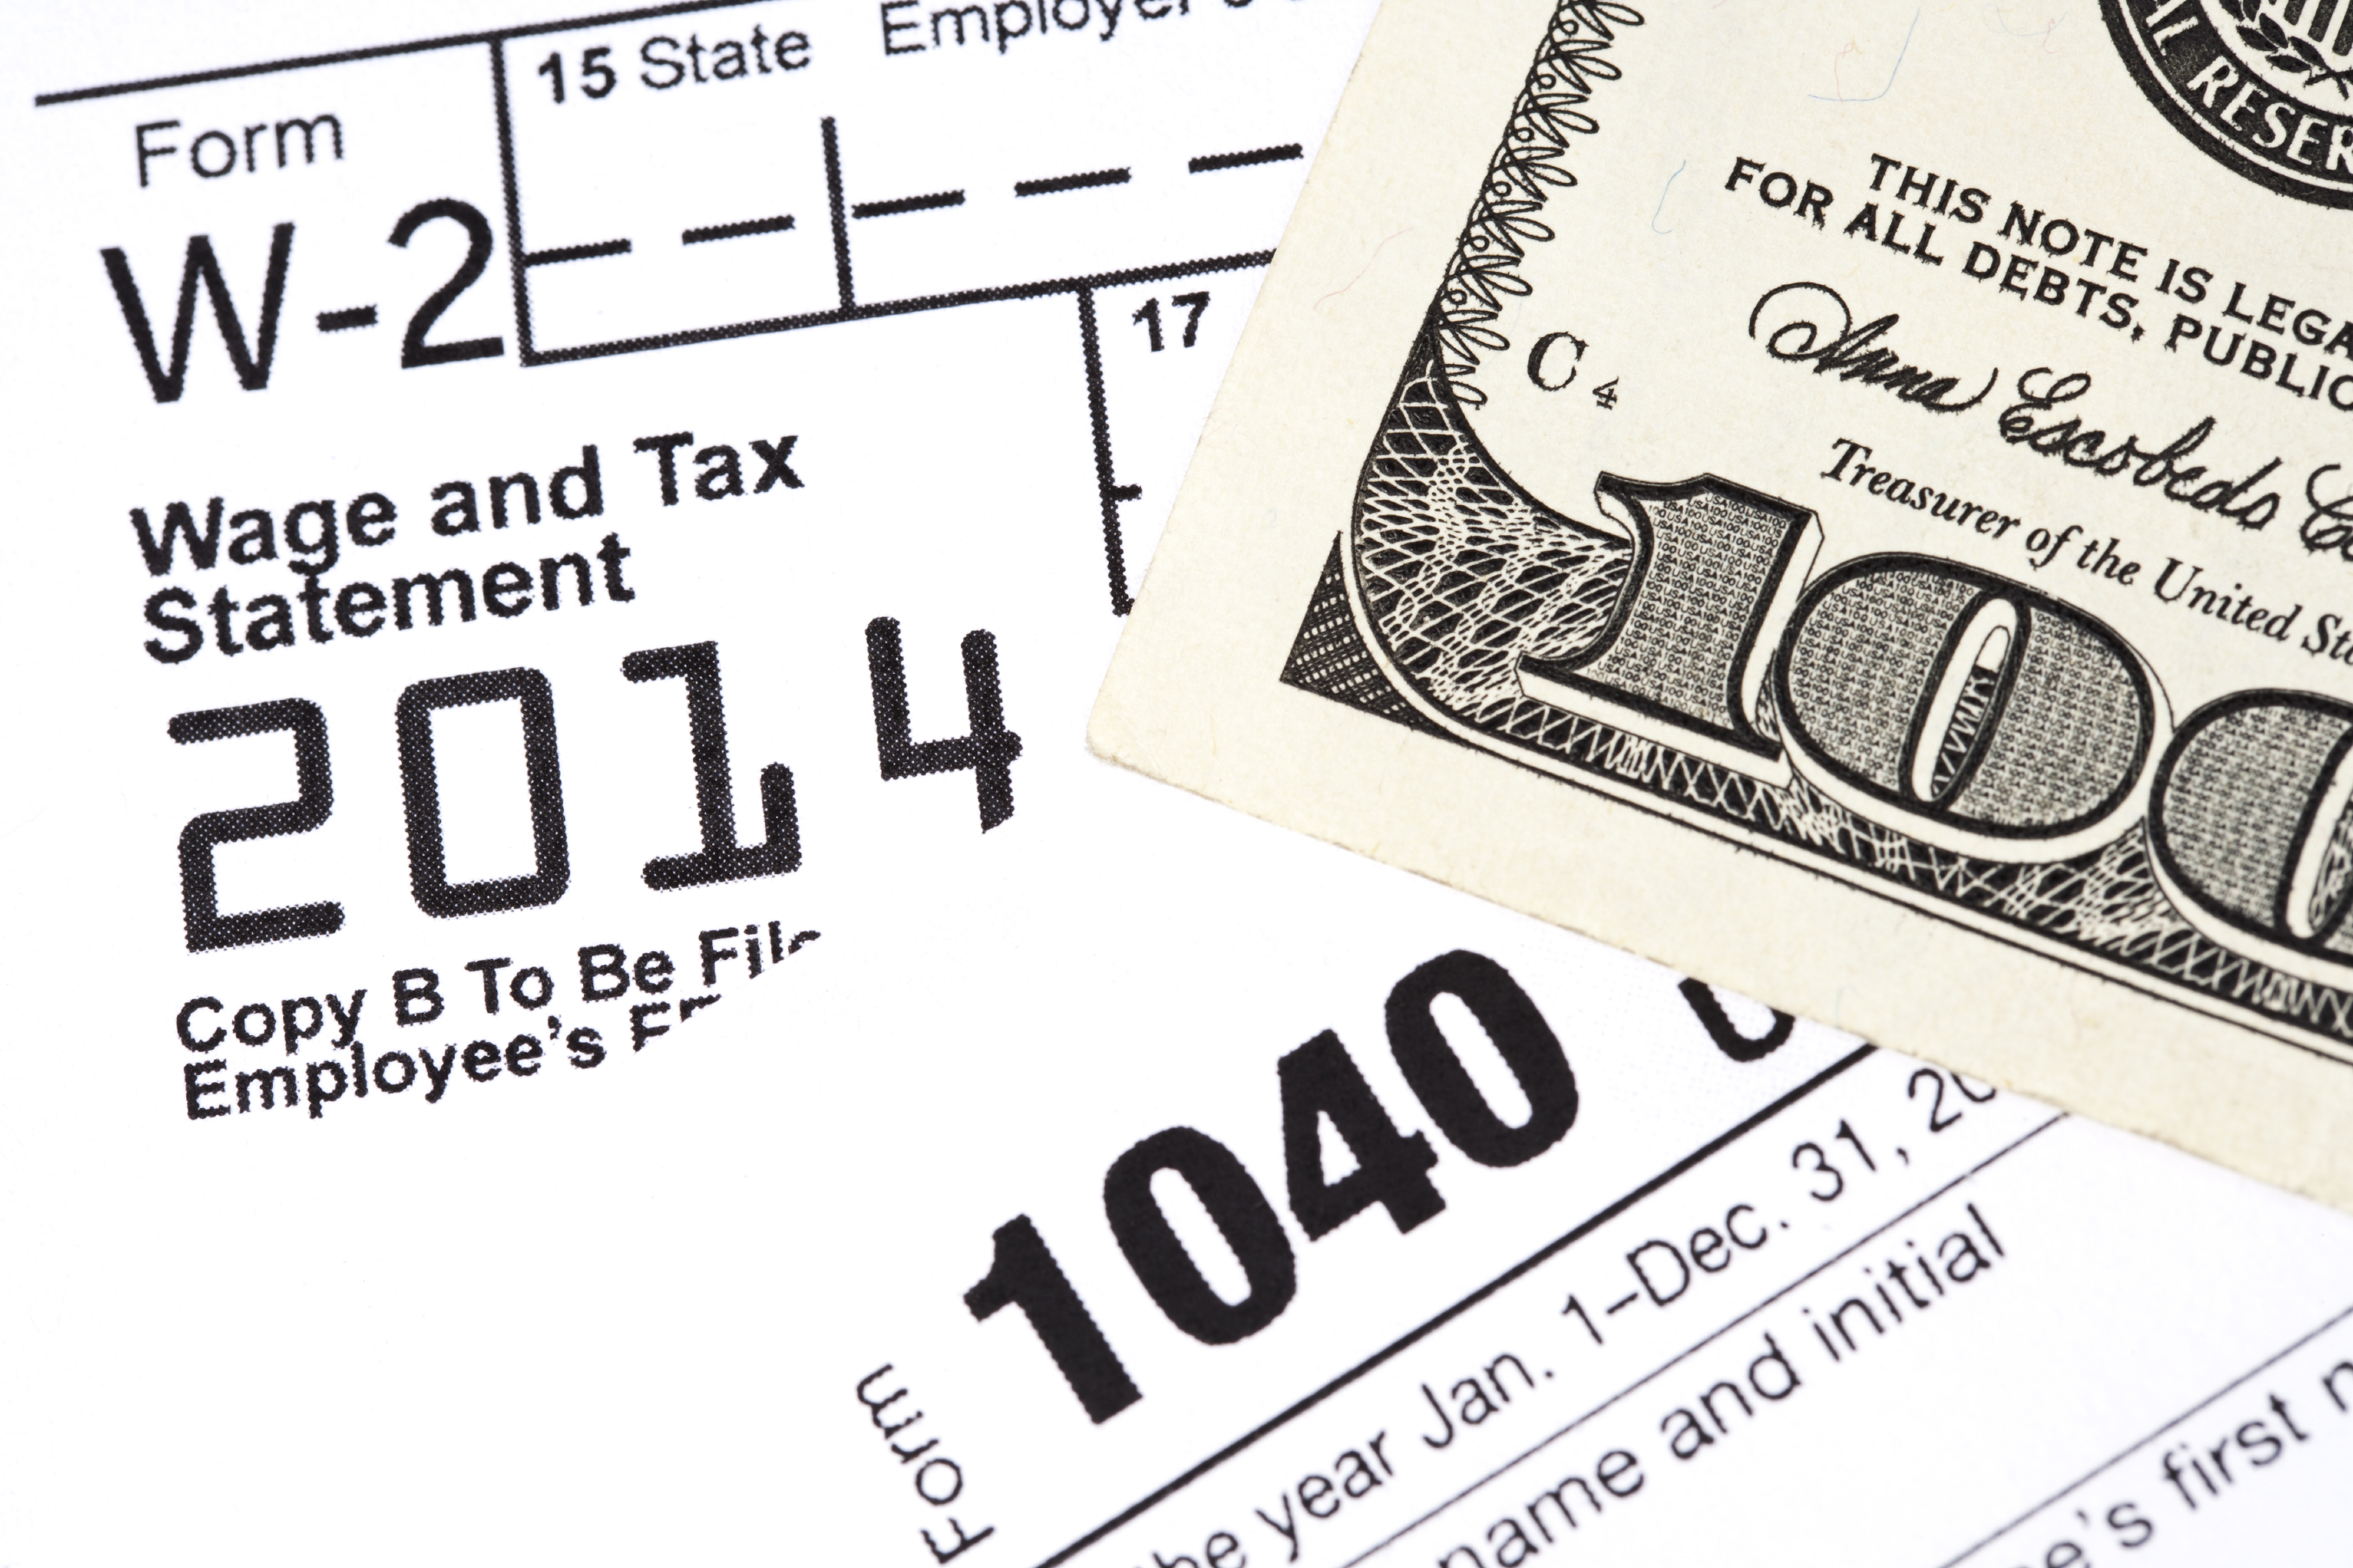 W-2 Distribution: When Should I File?